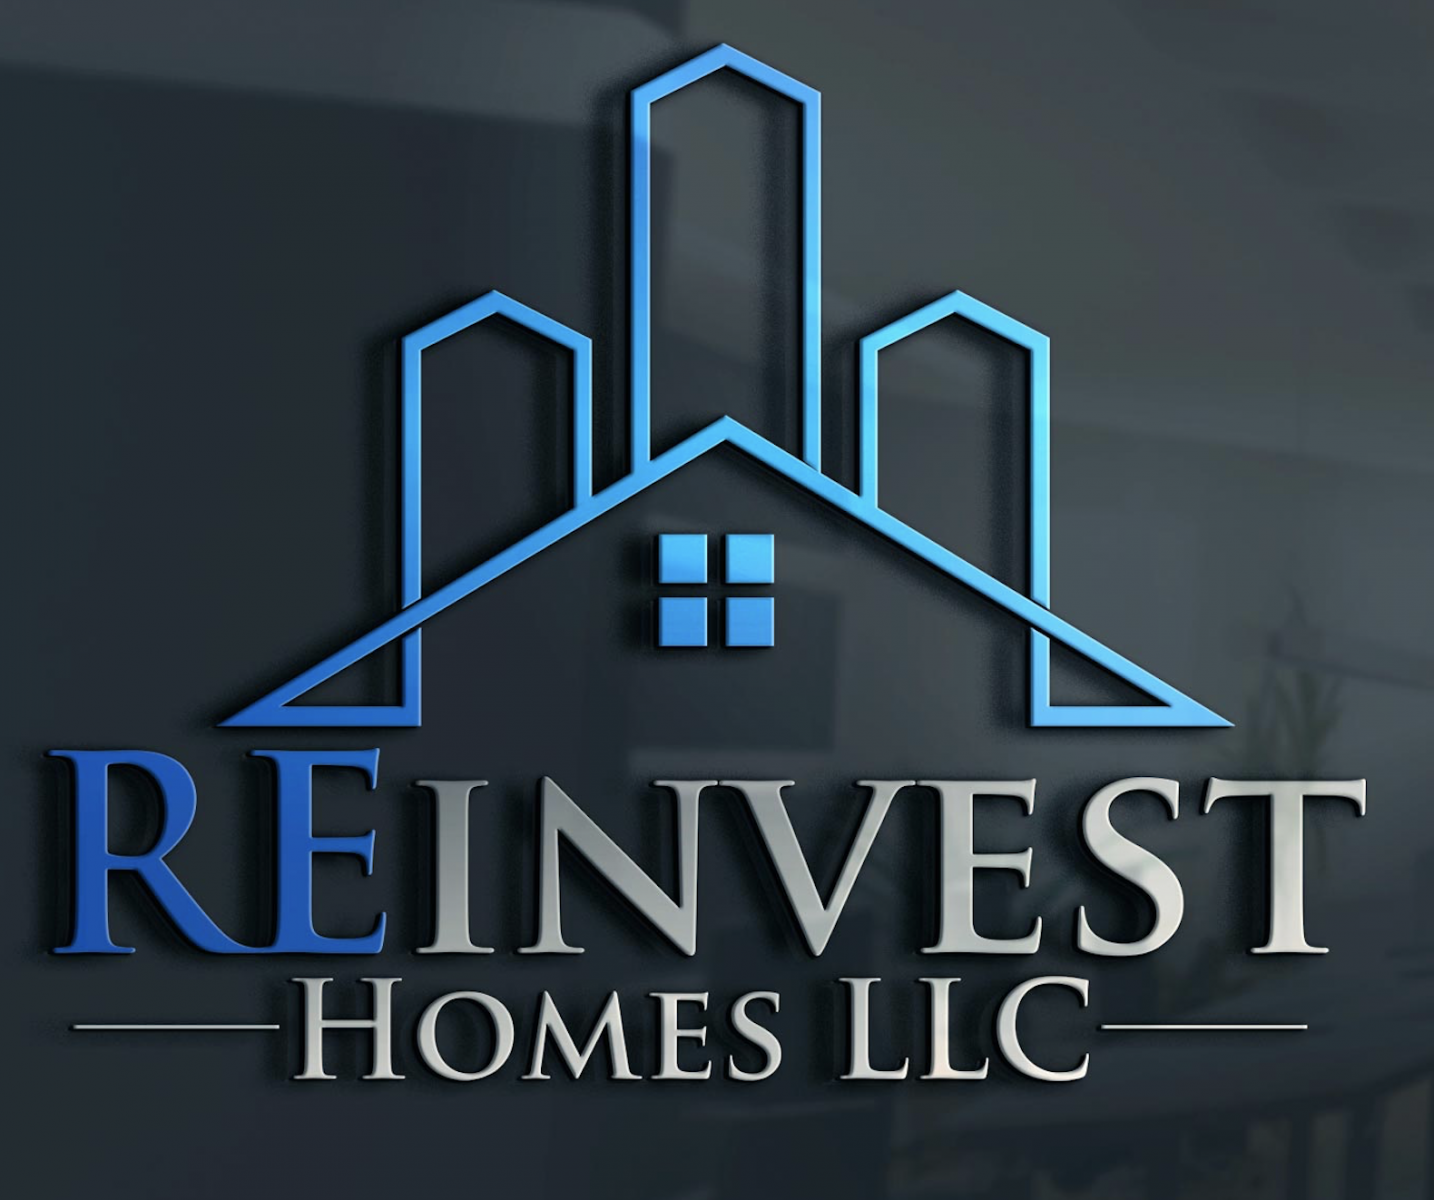 REinvest Homes LLC logo